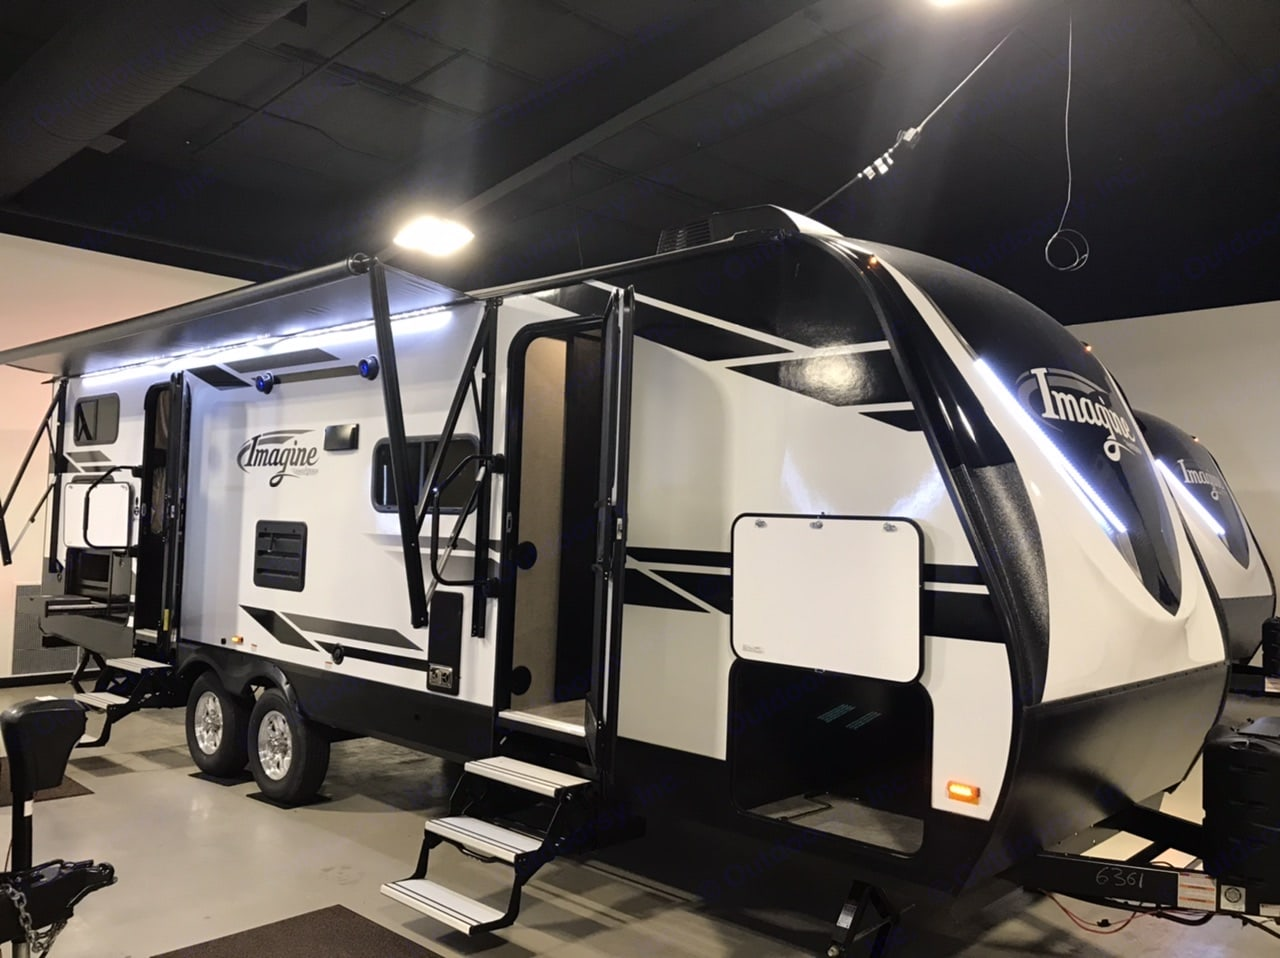 Clean and ready to roll.  Easily pulled with 1/2 ton truck or SUV. Weight distributing hitch included. . Grand Design Imagine 2019